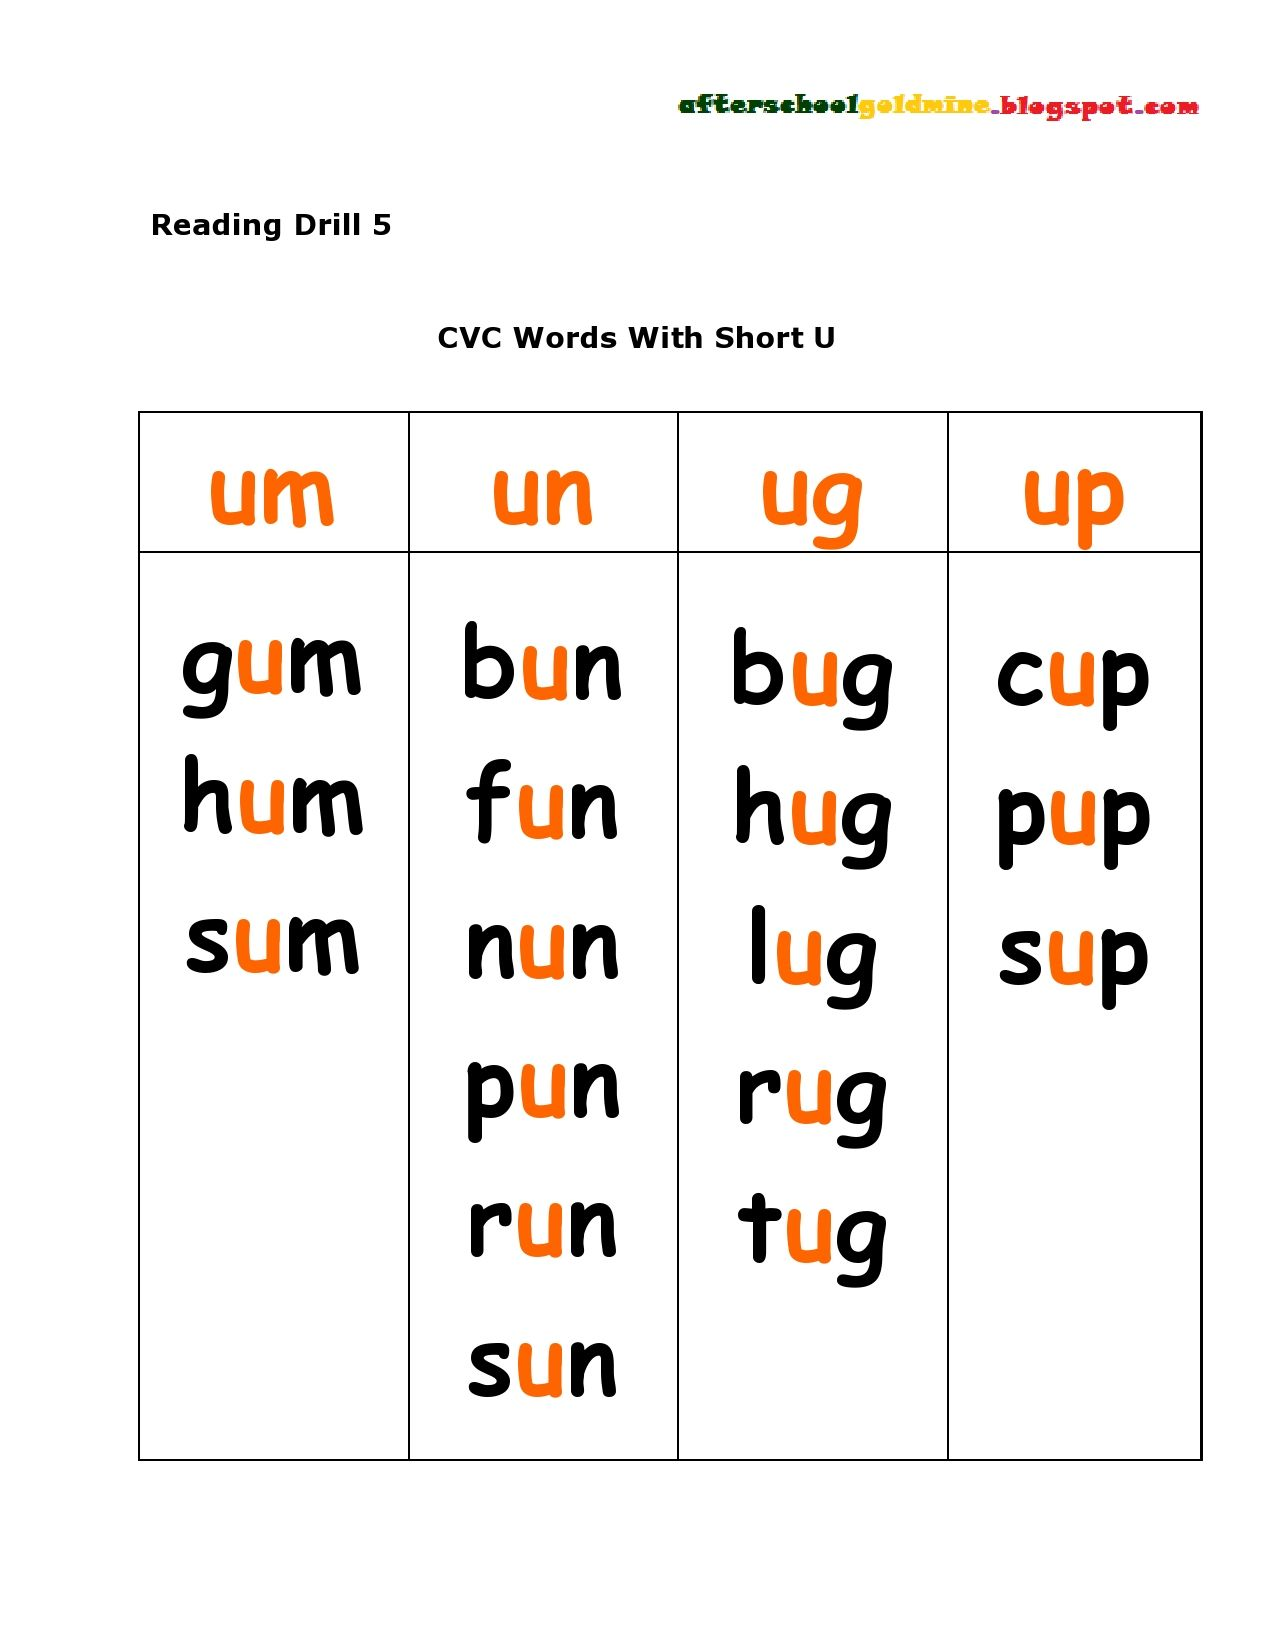 Image Result For Short U Cvc Words